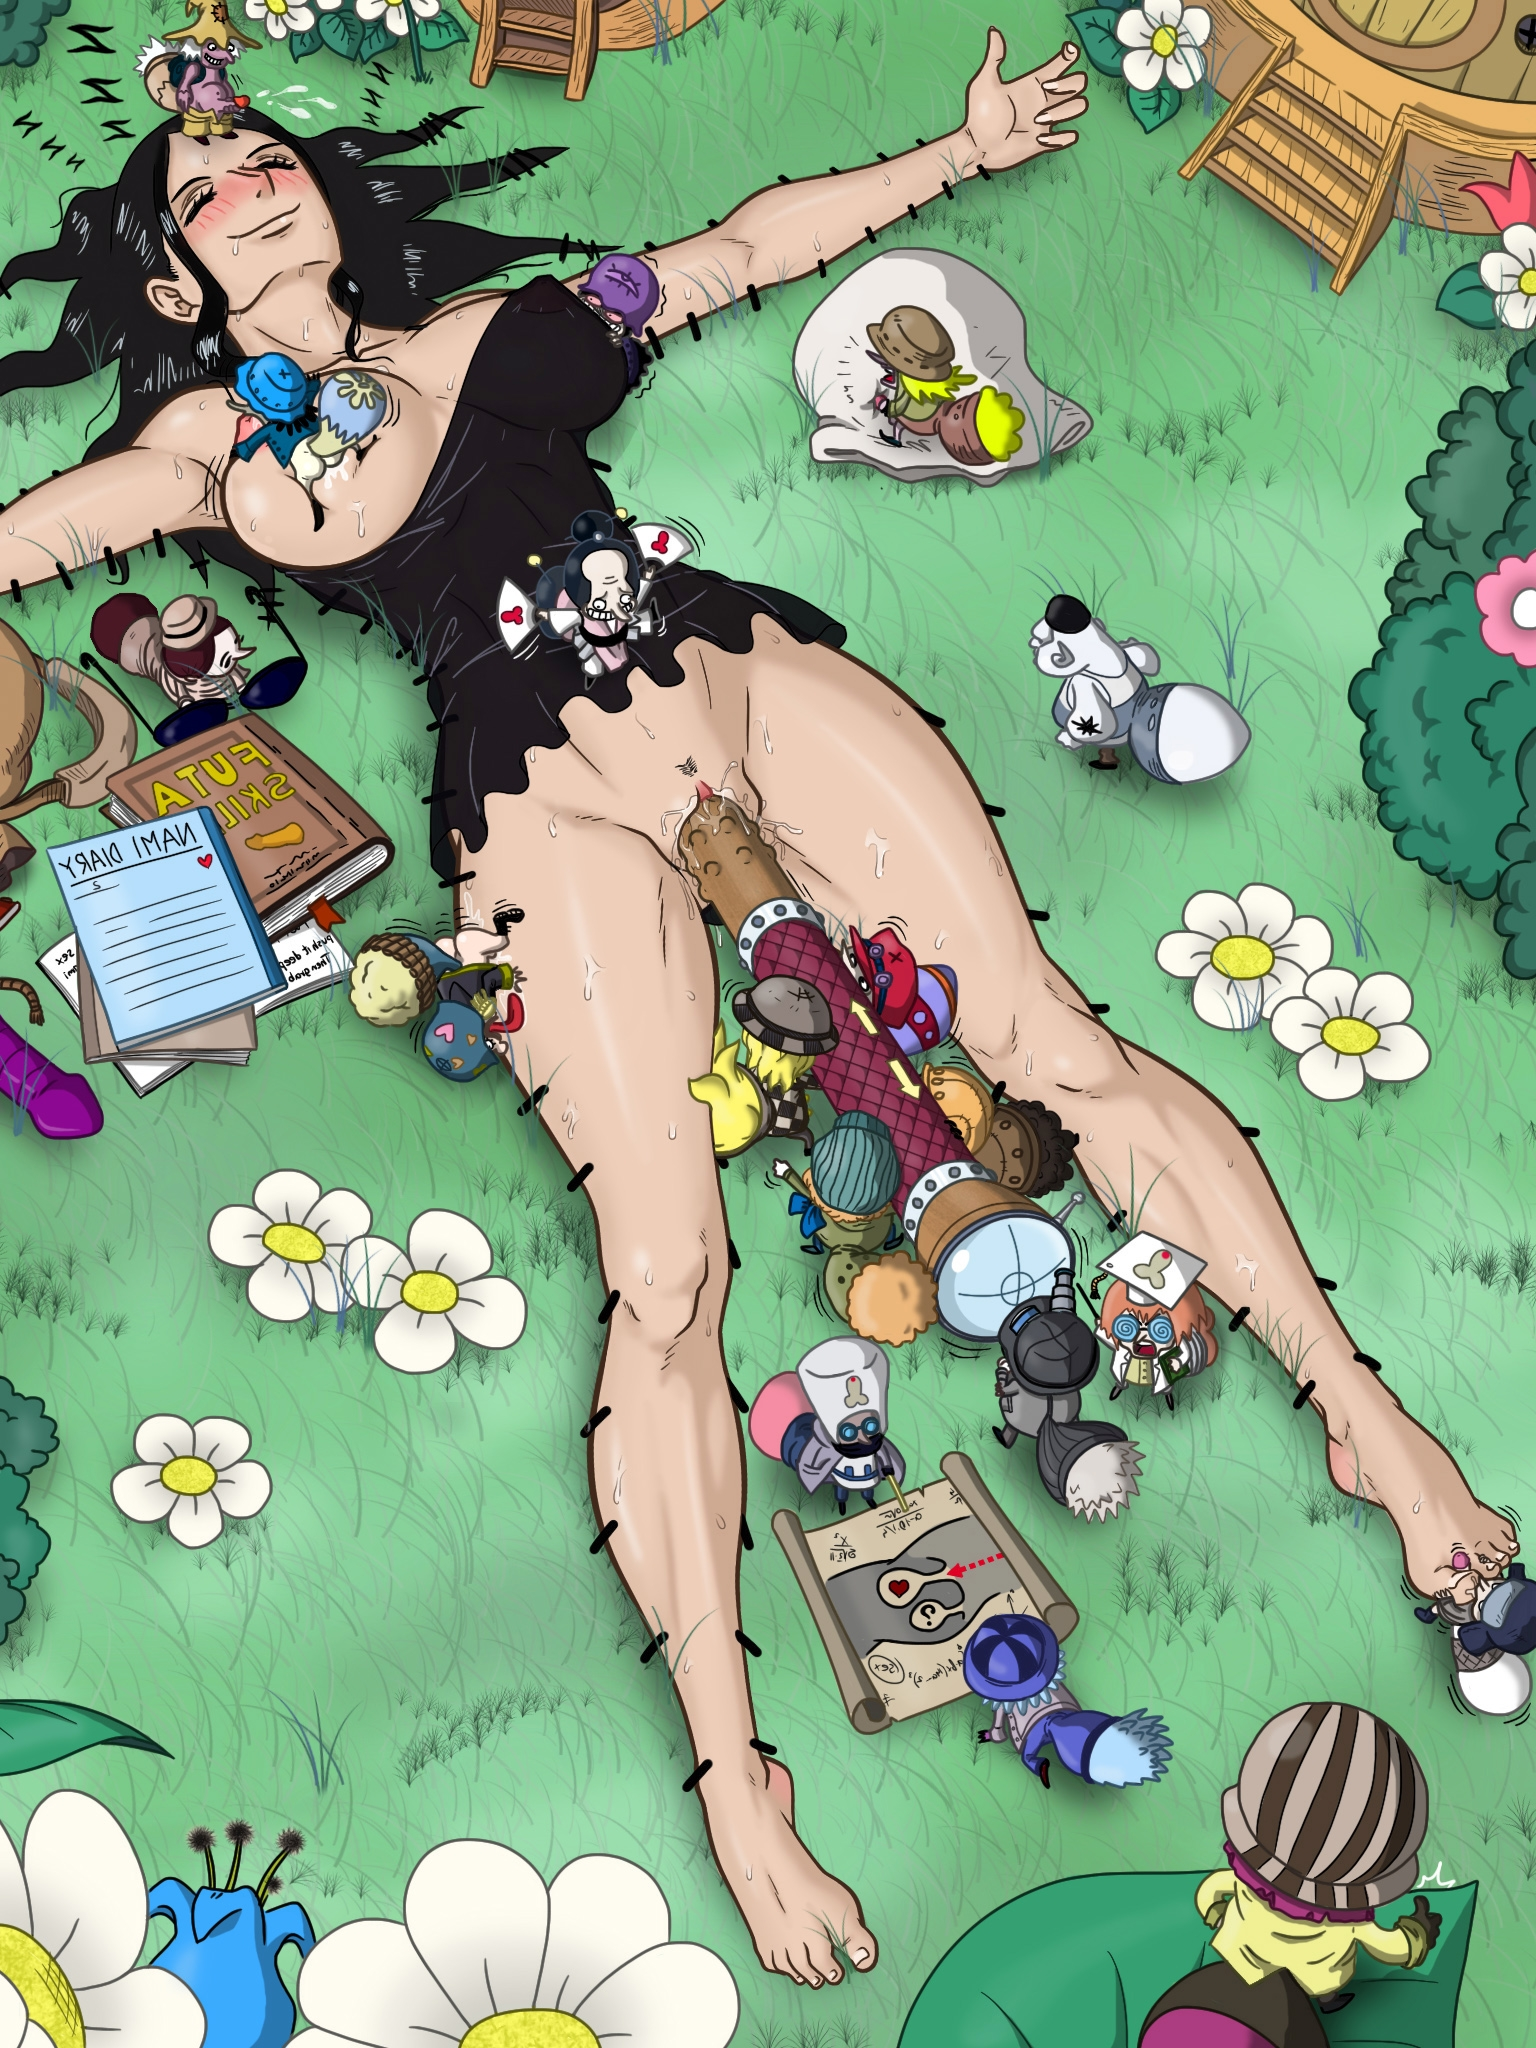 Toon sex pic ##0001301360609 ahgot barefoot big breasts black hair blush clothed sex cum on face feet flowers futanari gnome grass legs licking lying masturbation nico robin nipple suck on back one piece sex sex toy size difference sleeping smile spread arms spread legs sweat